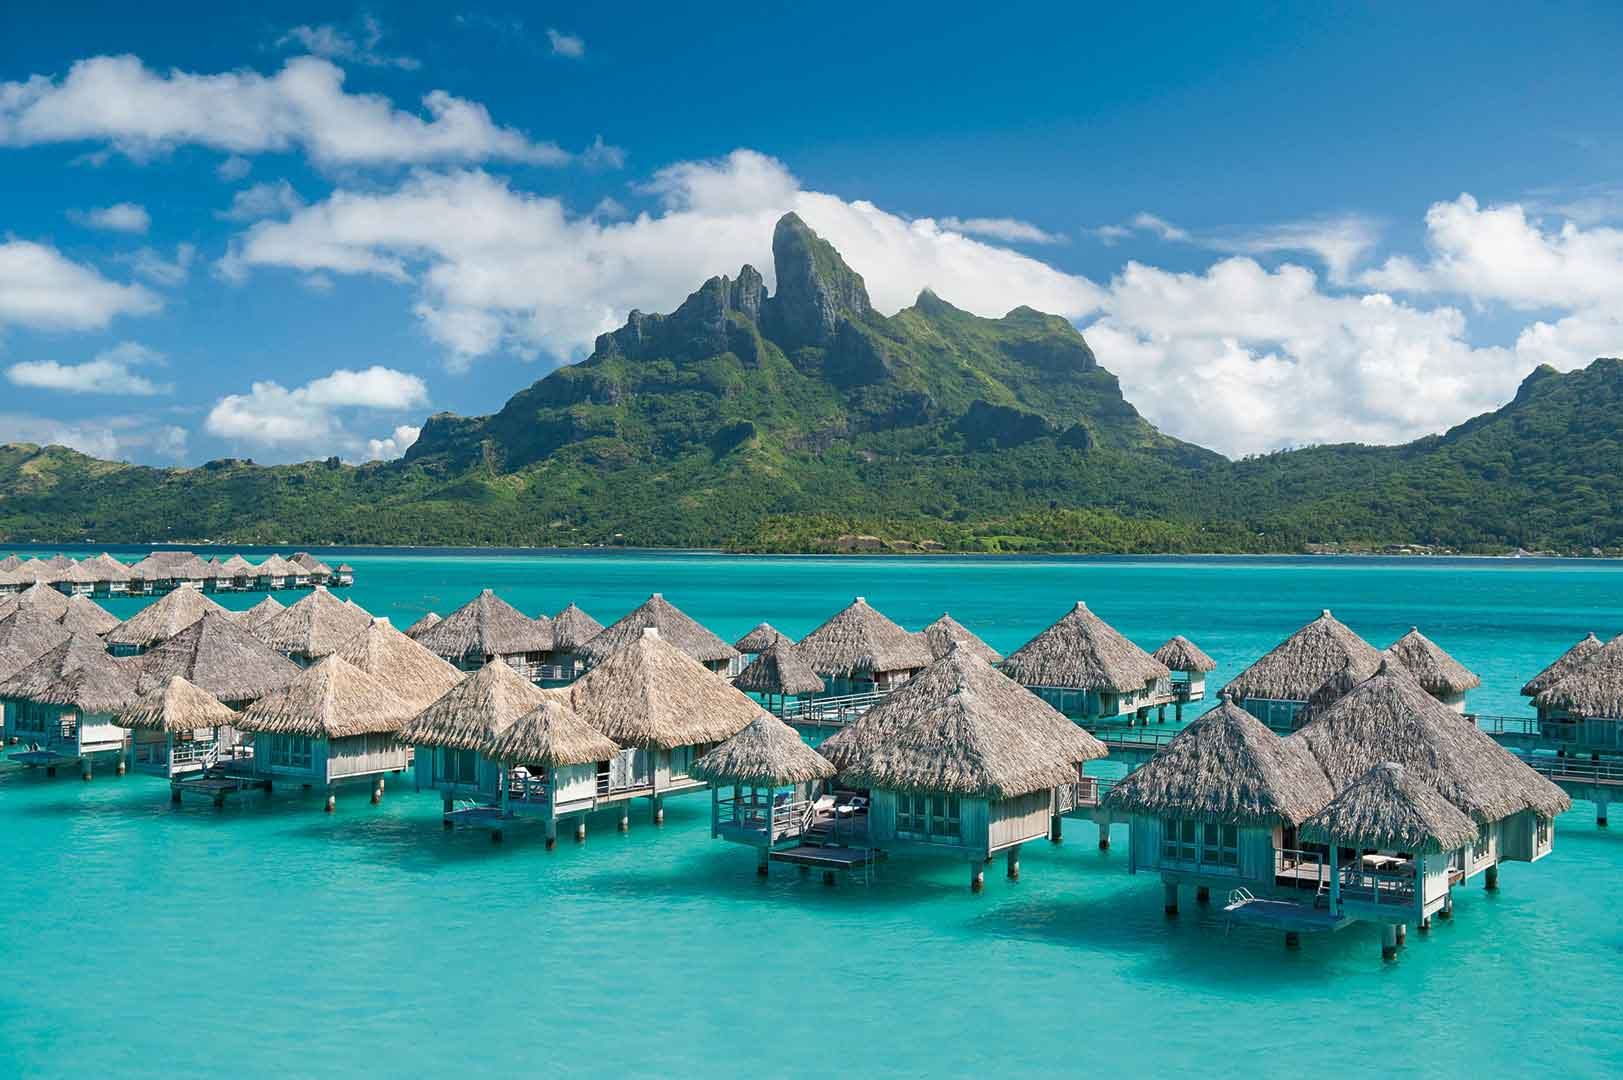 The Volcanic Peaks Of Mount Otemanu Provide A Dramatic Backdrop To St Regis Bora All Photos Are Courtesy Property Mentioned